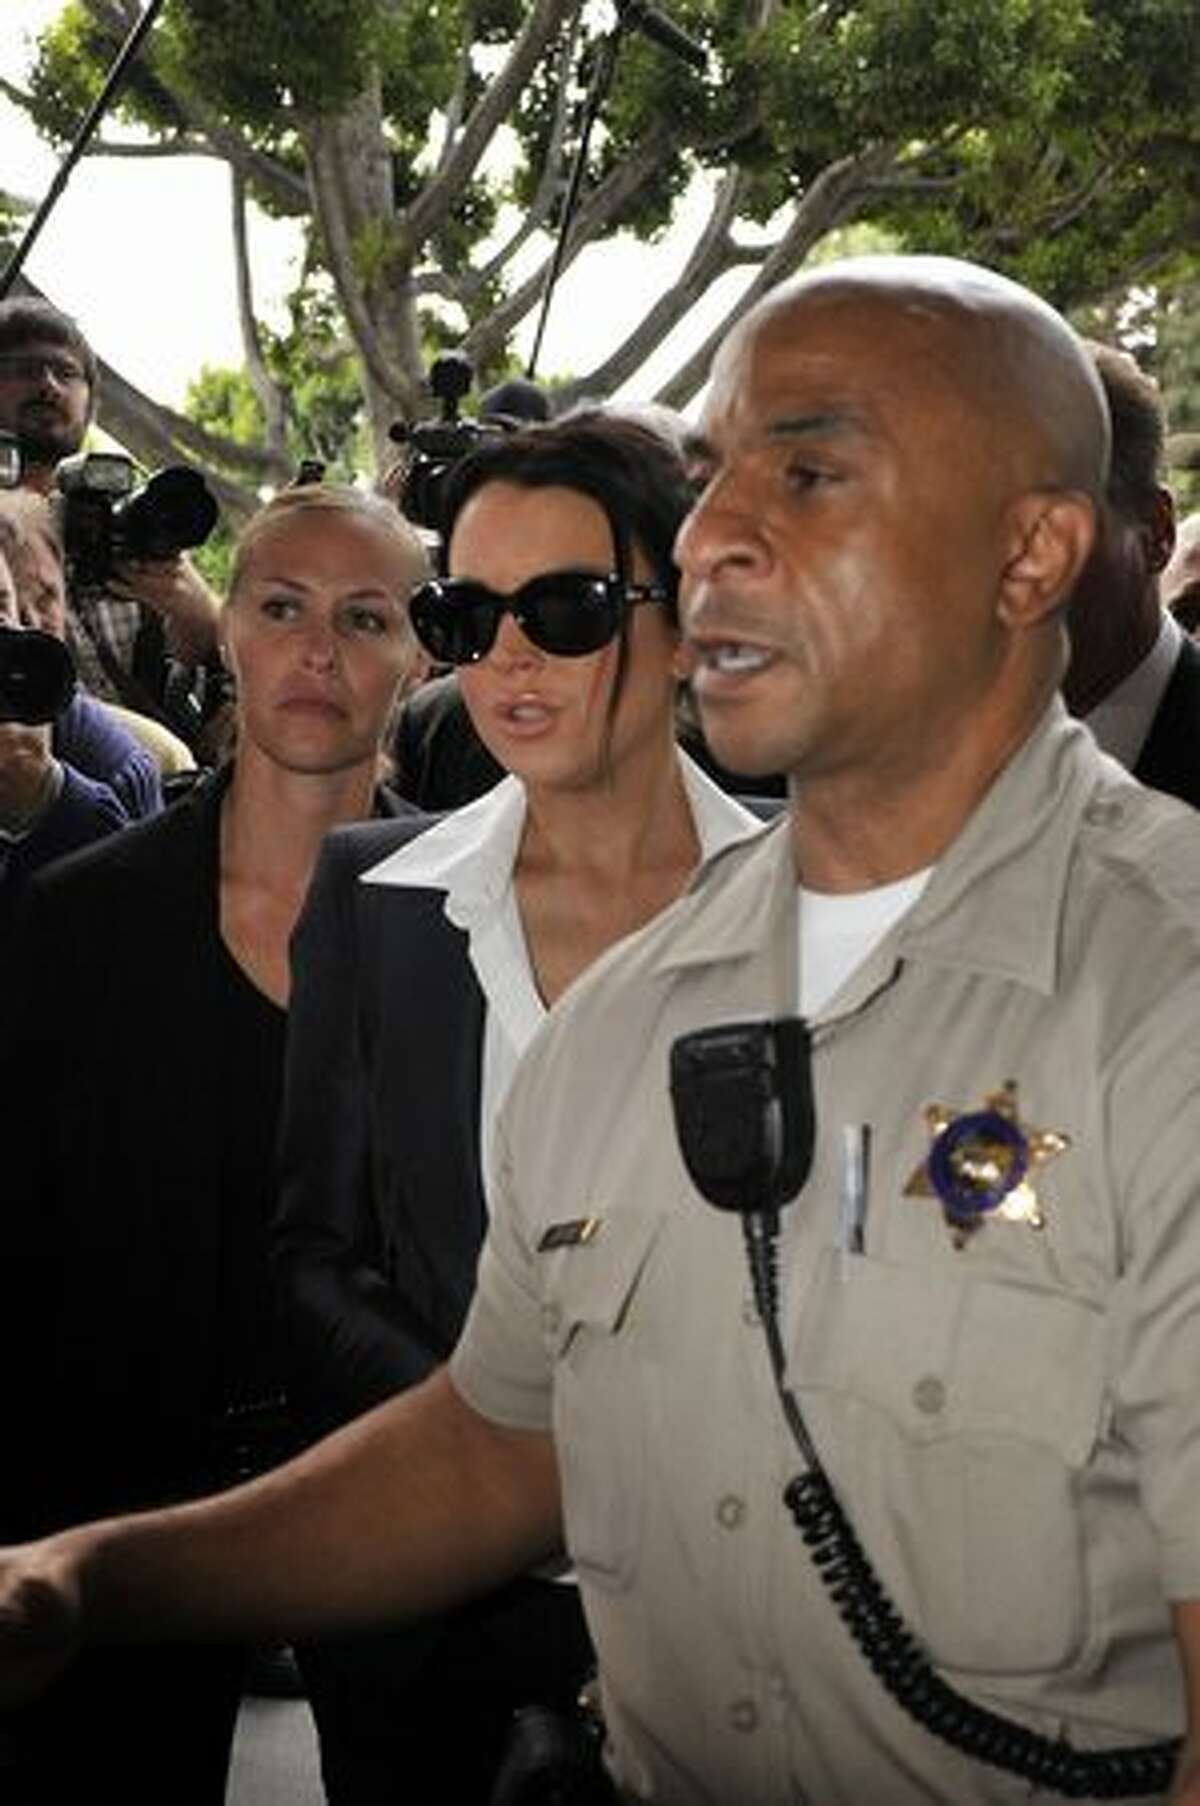 Lohan arrives at court for her probation status hearing on Monday.